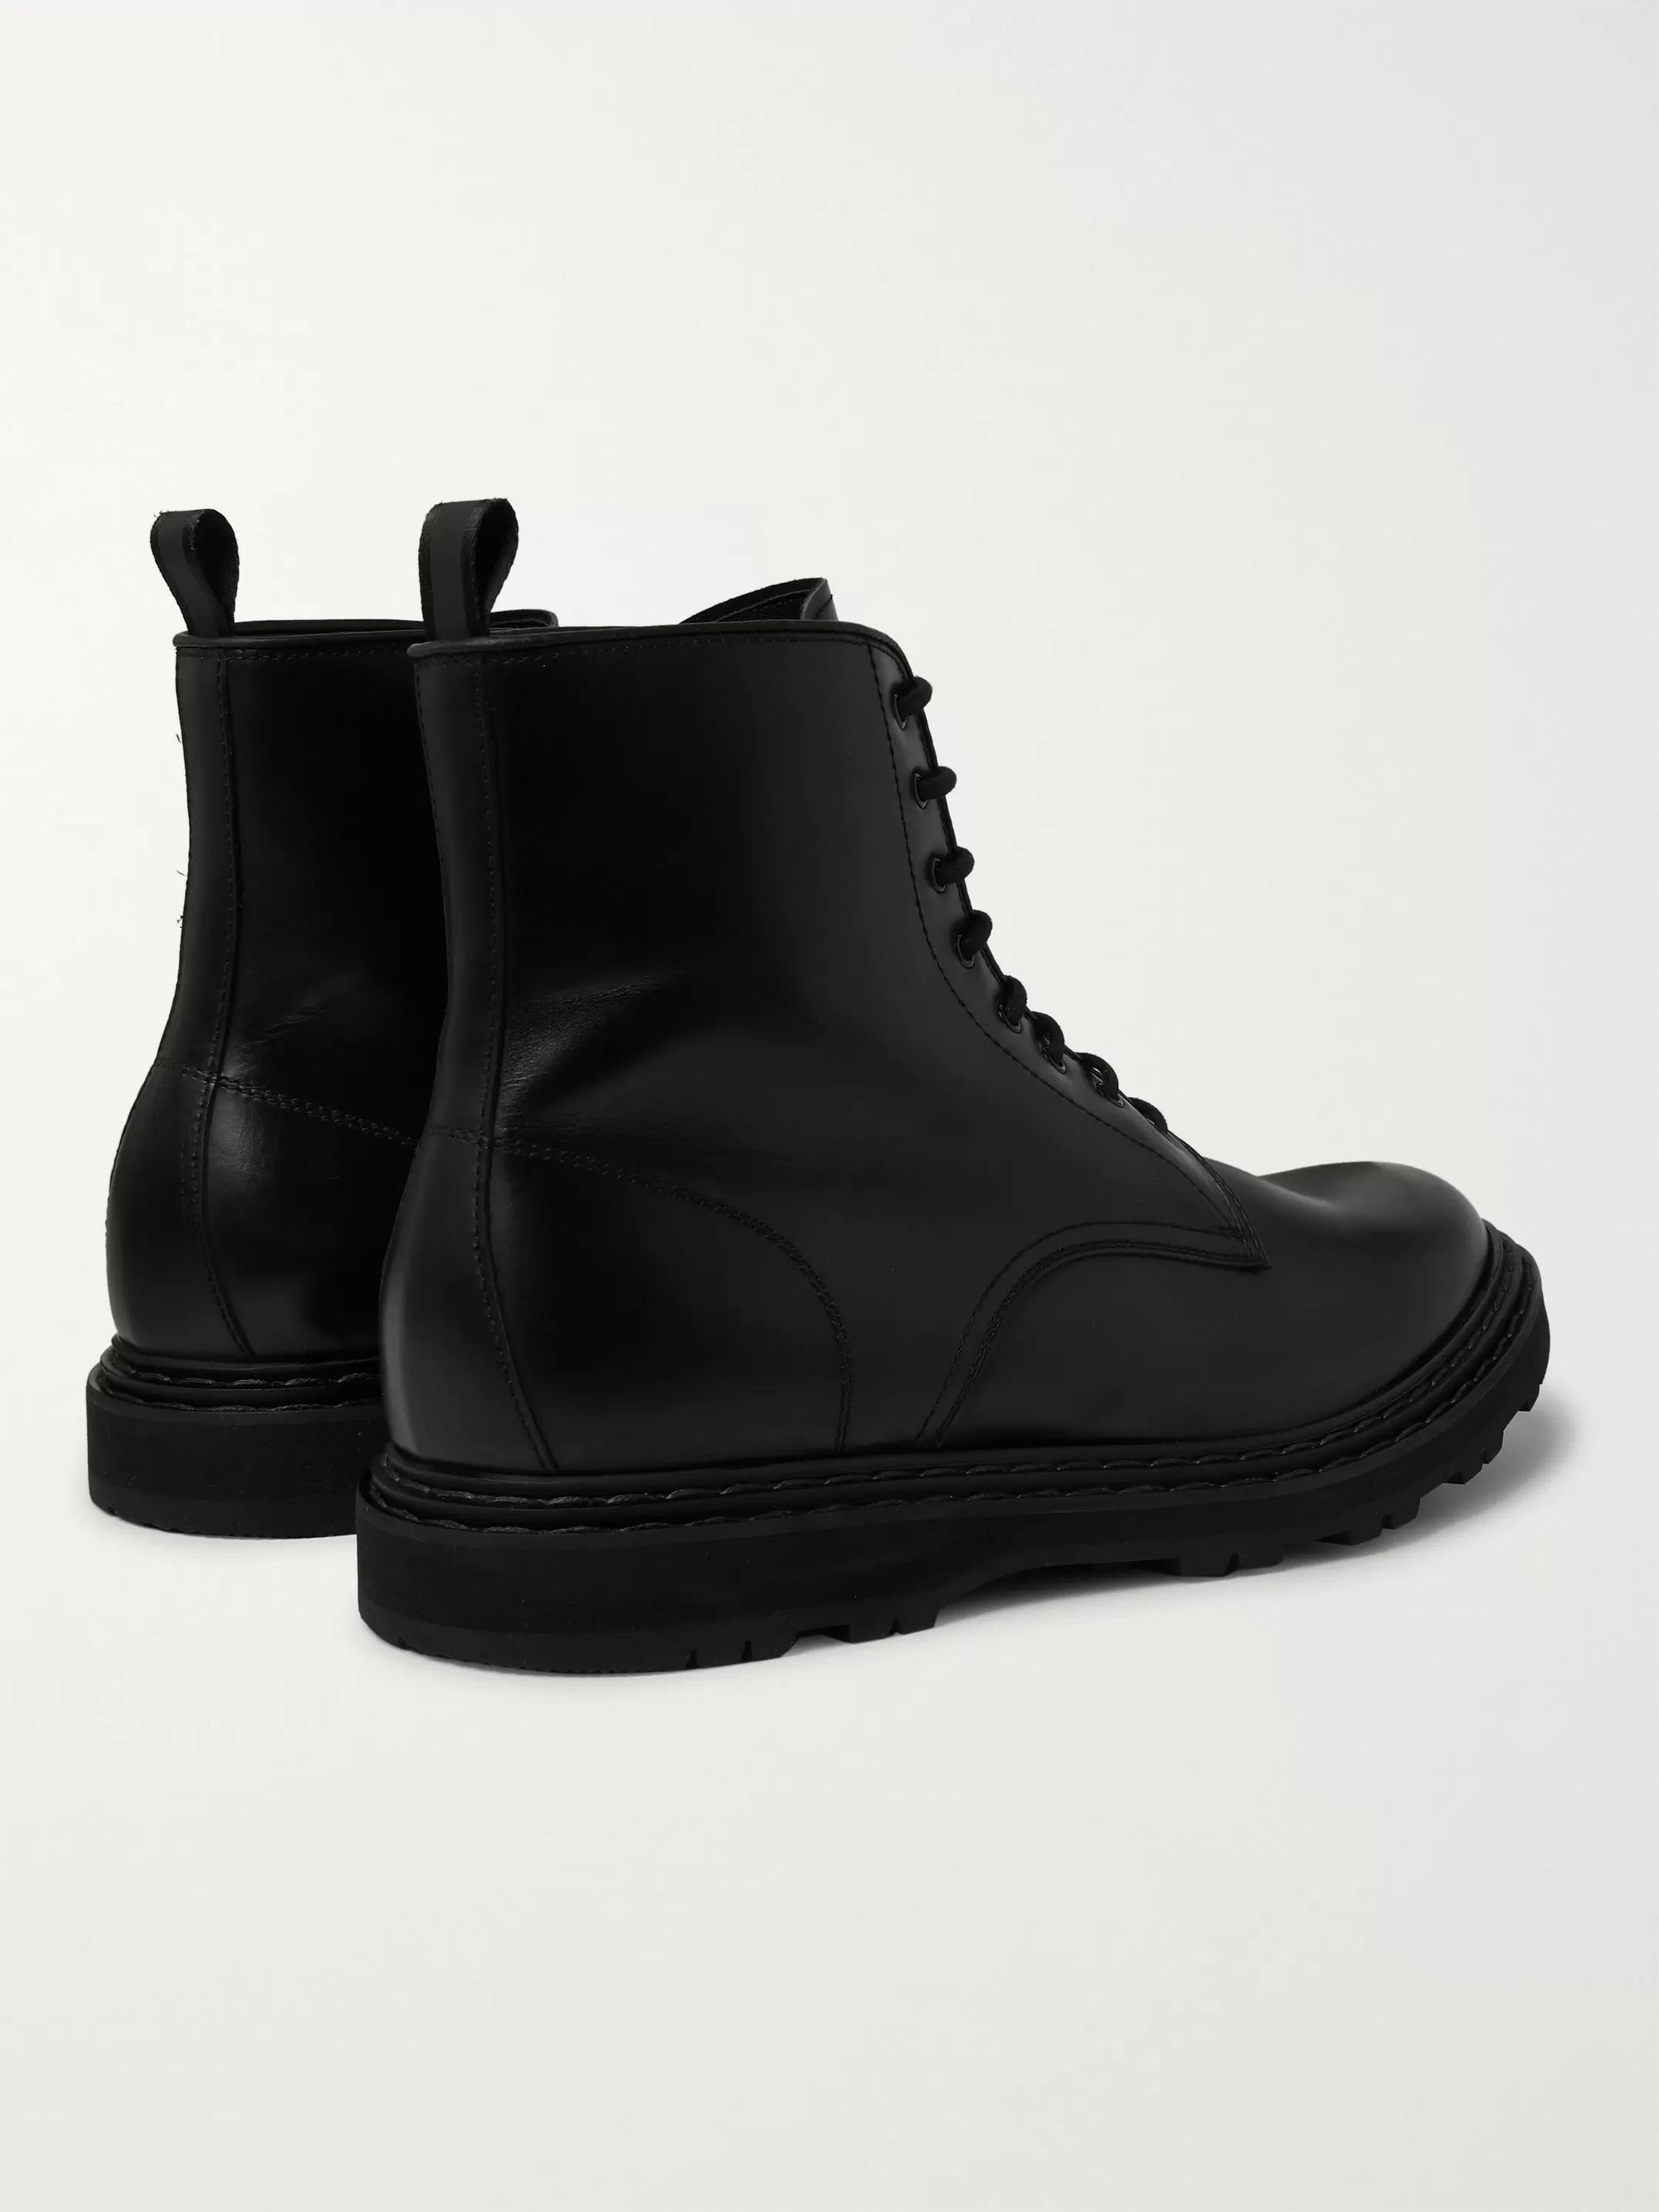 Officine Creative Lydon Leather Boots